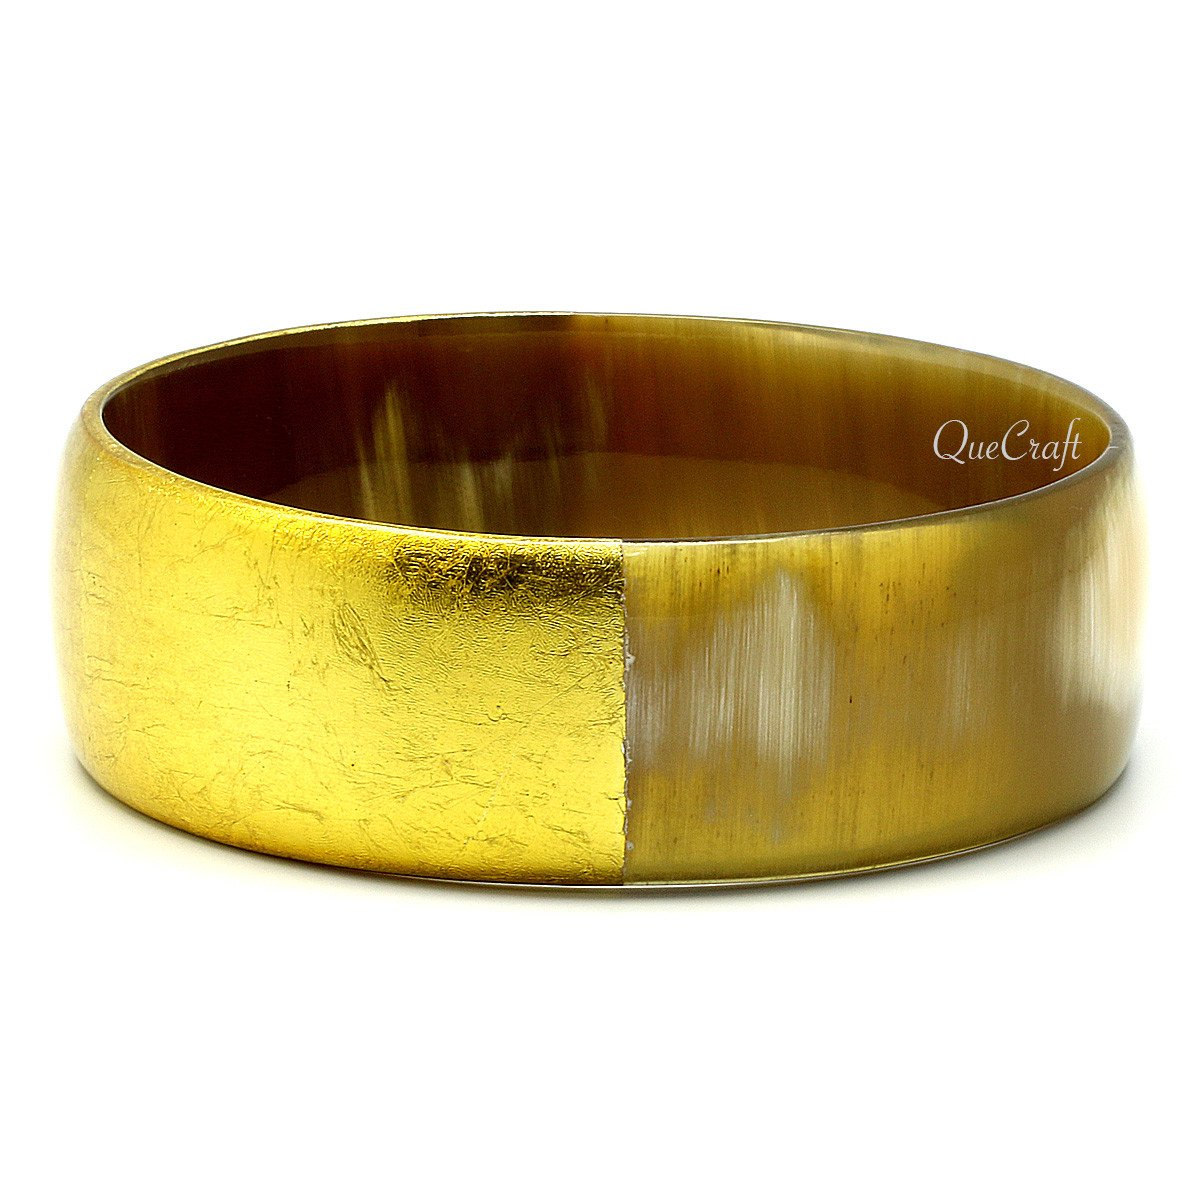 Horn & Lacquer Bangle Bracelet #7270 - HORN.JEWELRY by QueCraft